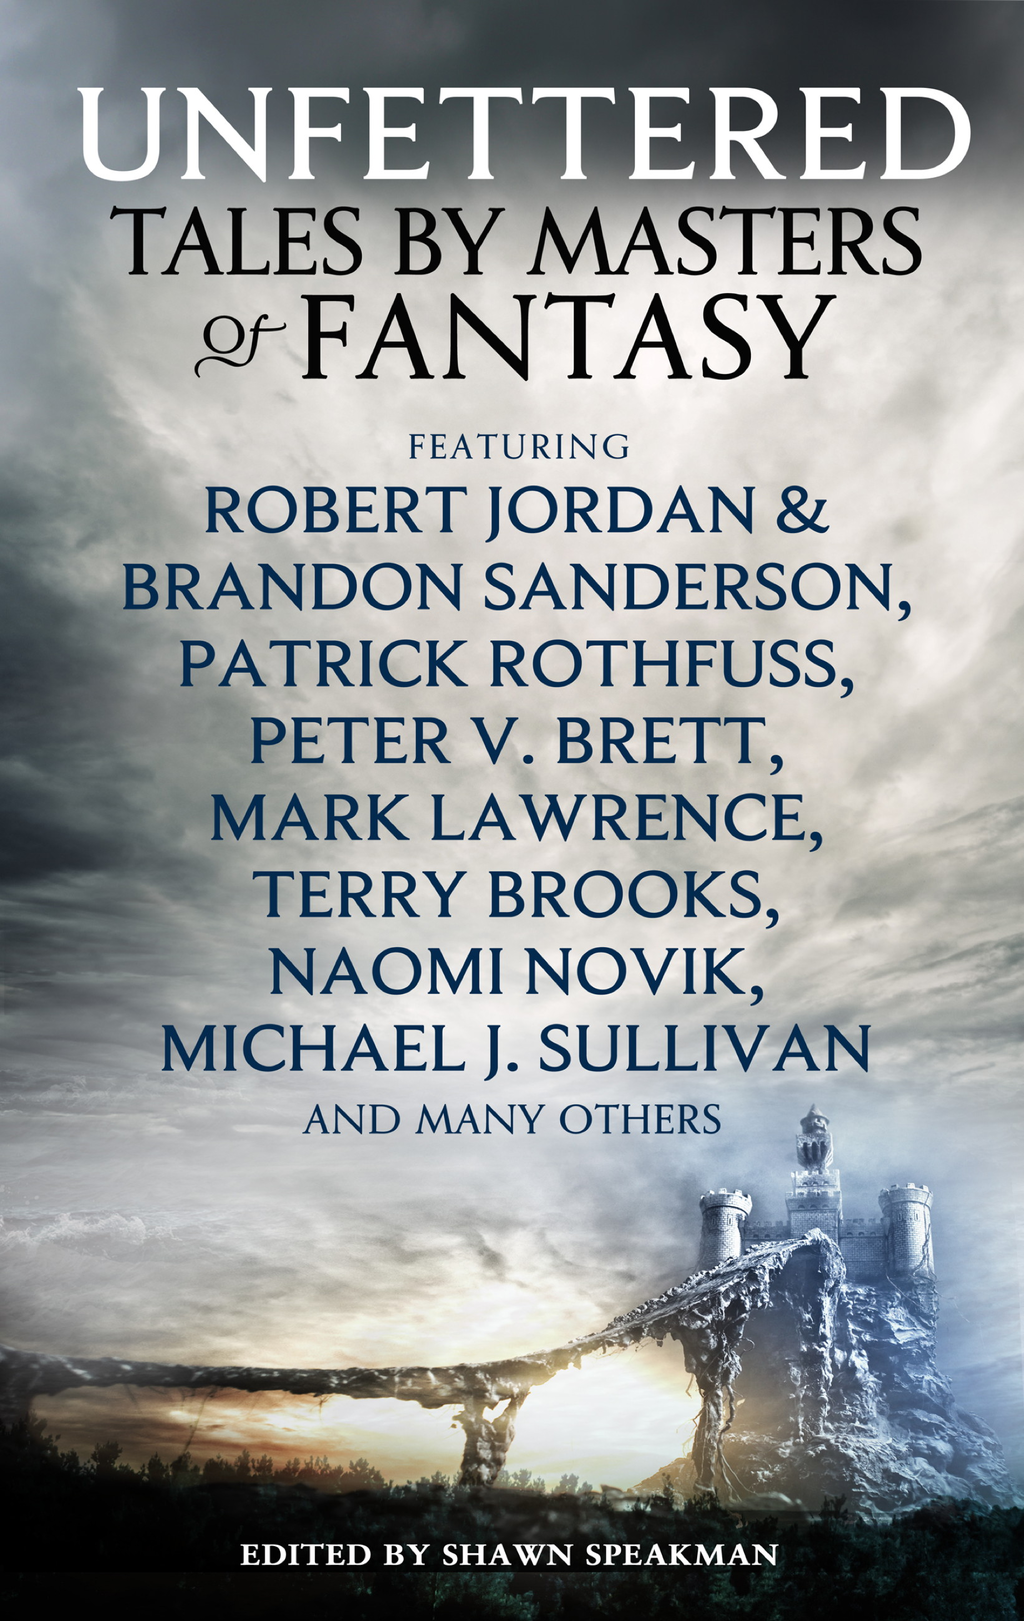 Unfettered Tales by Masters of Fantasy